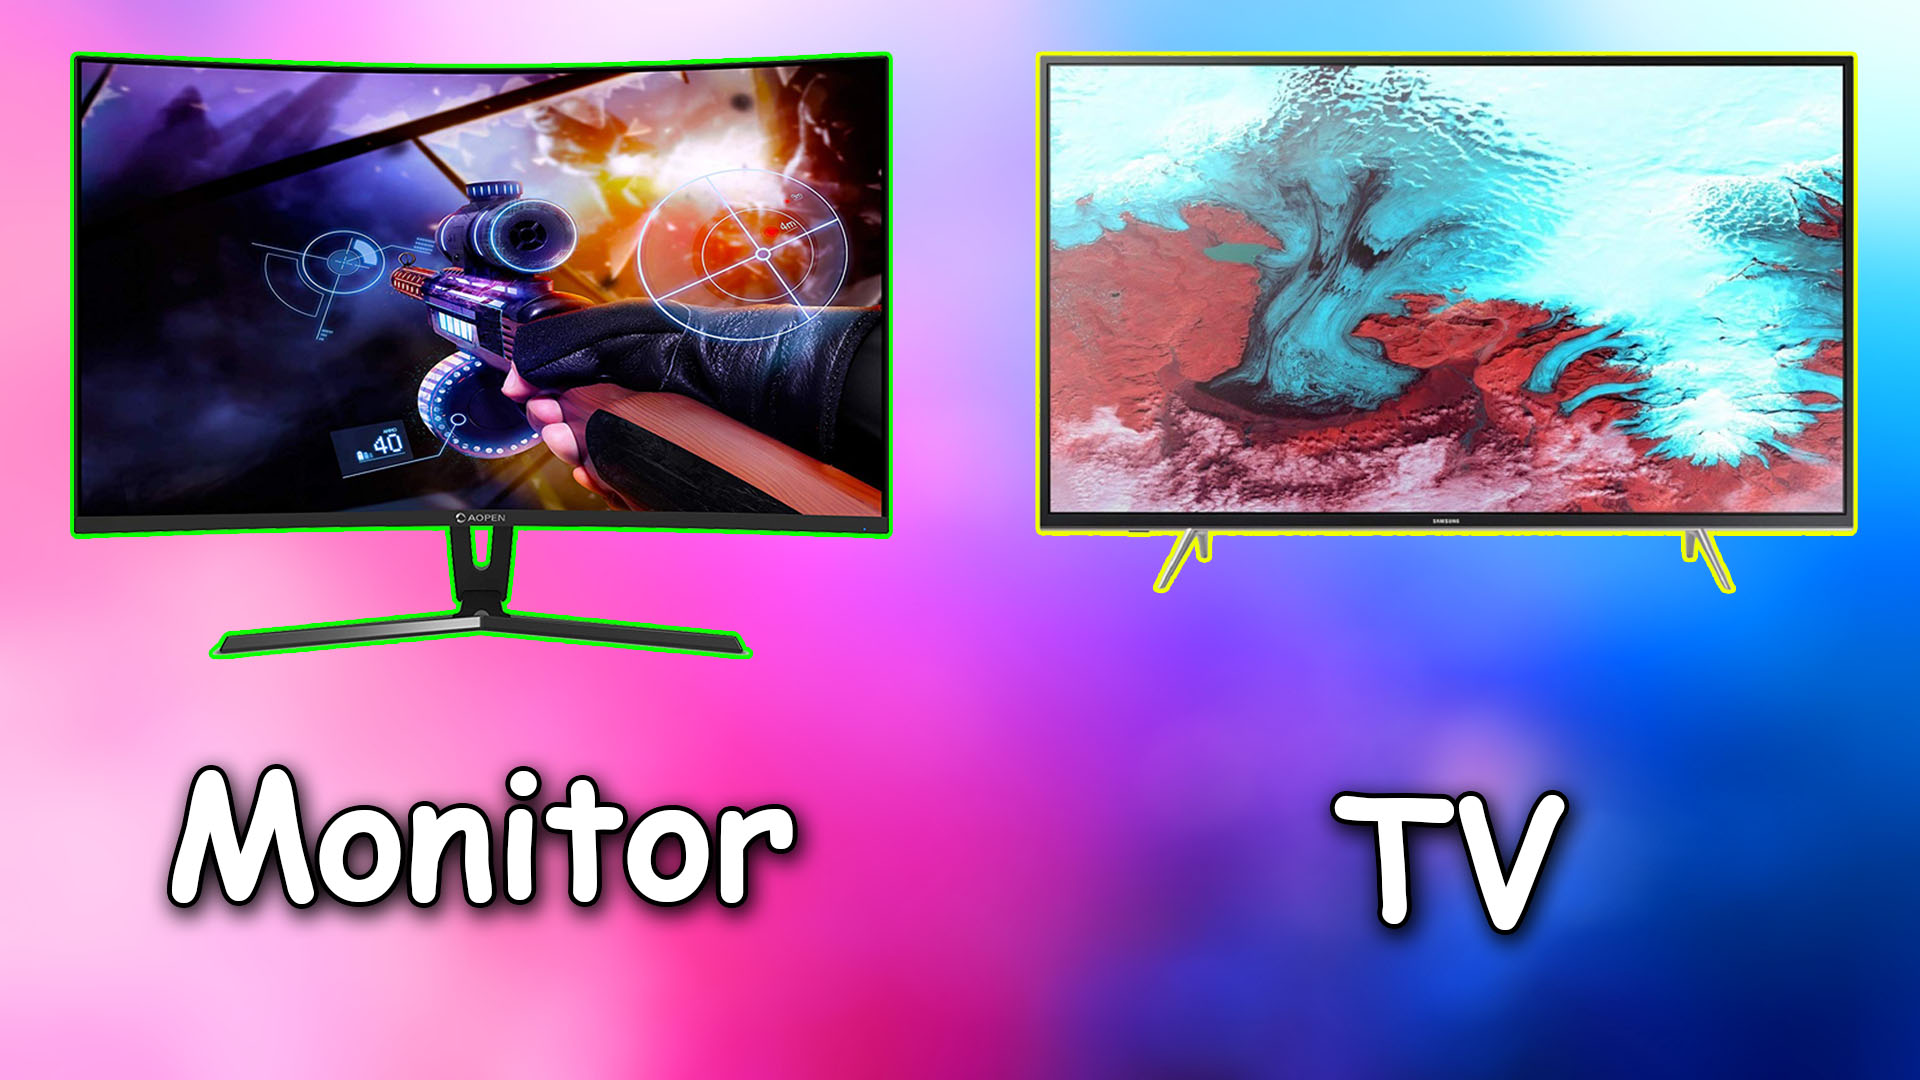 TV Vs Monitor: Which One Should Be Picked?